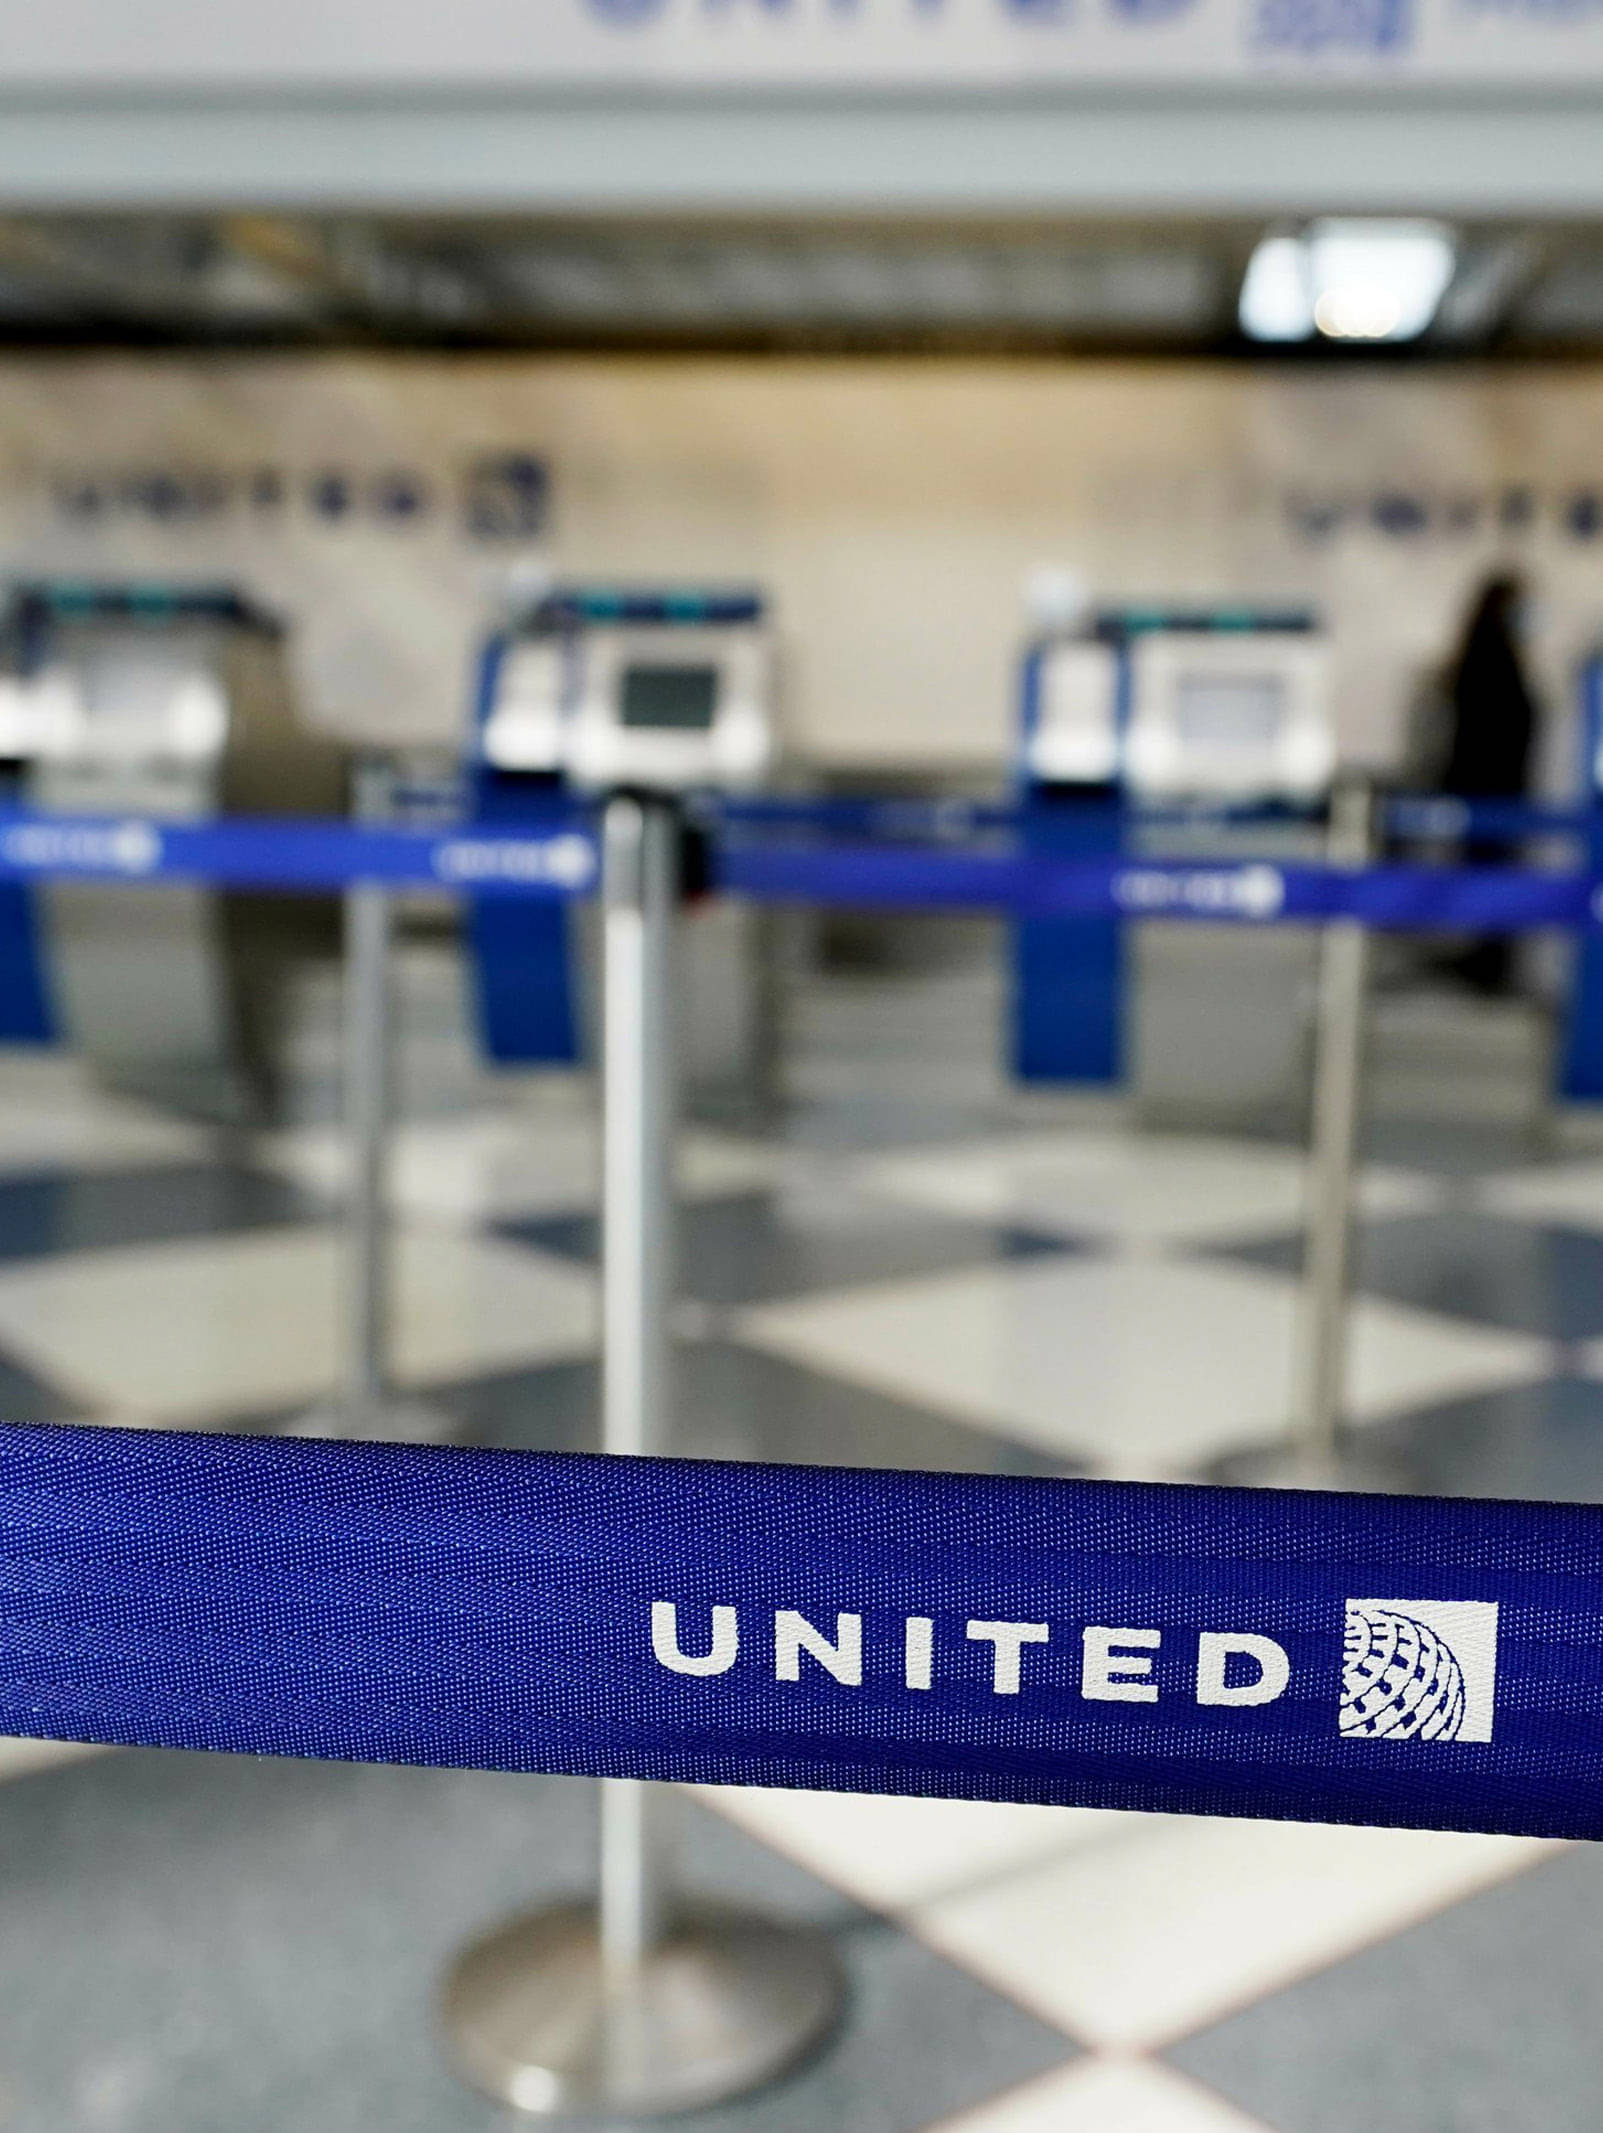 UNITED LOSES $1.8 BILLION, AIMS TO SHIFT FOCUS TO RECOVERY